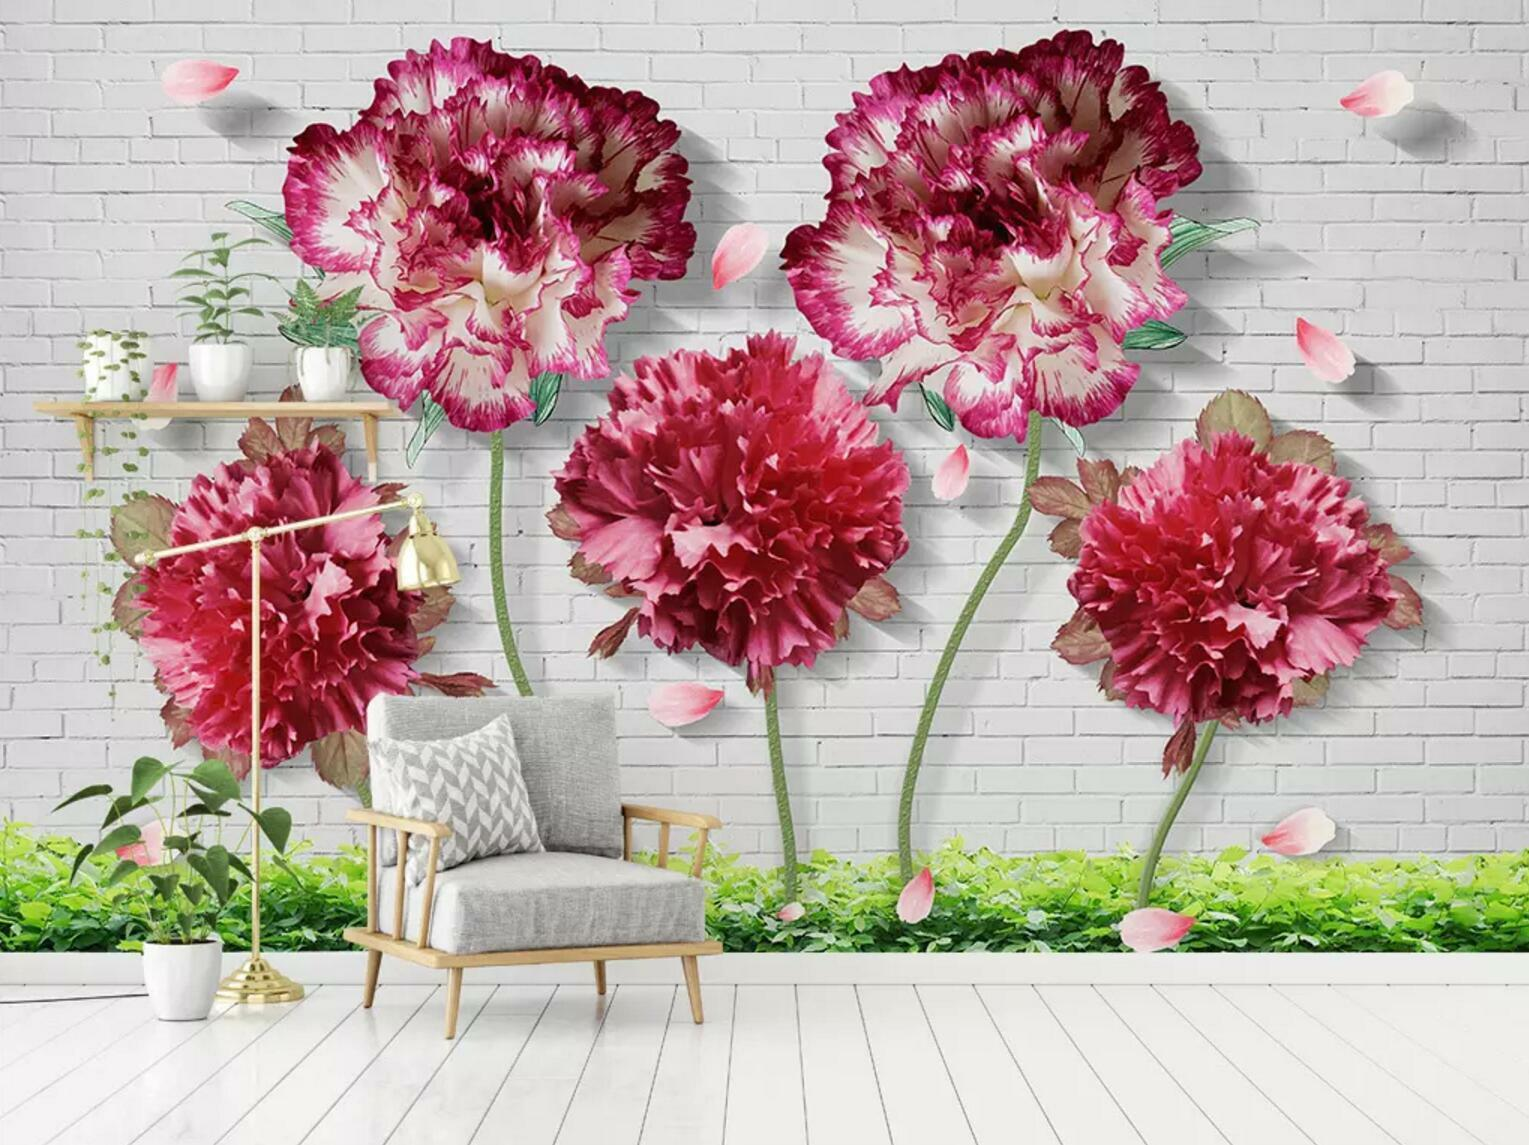 3D ROT Flower Petal 8 Wall Paper Exclusive MXY Wallpaper Mural Decal Indoor Wall